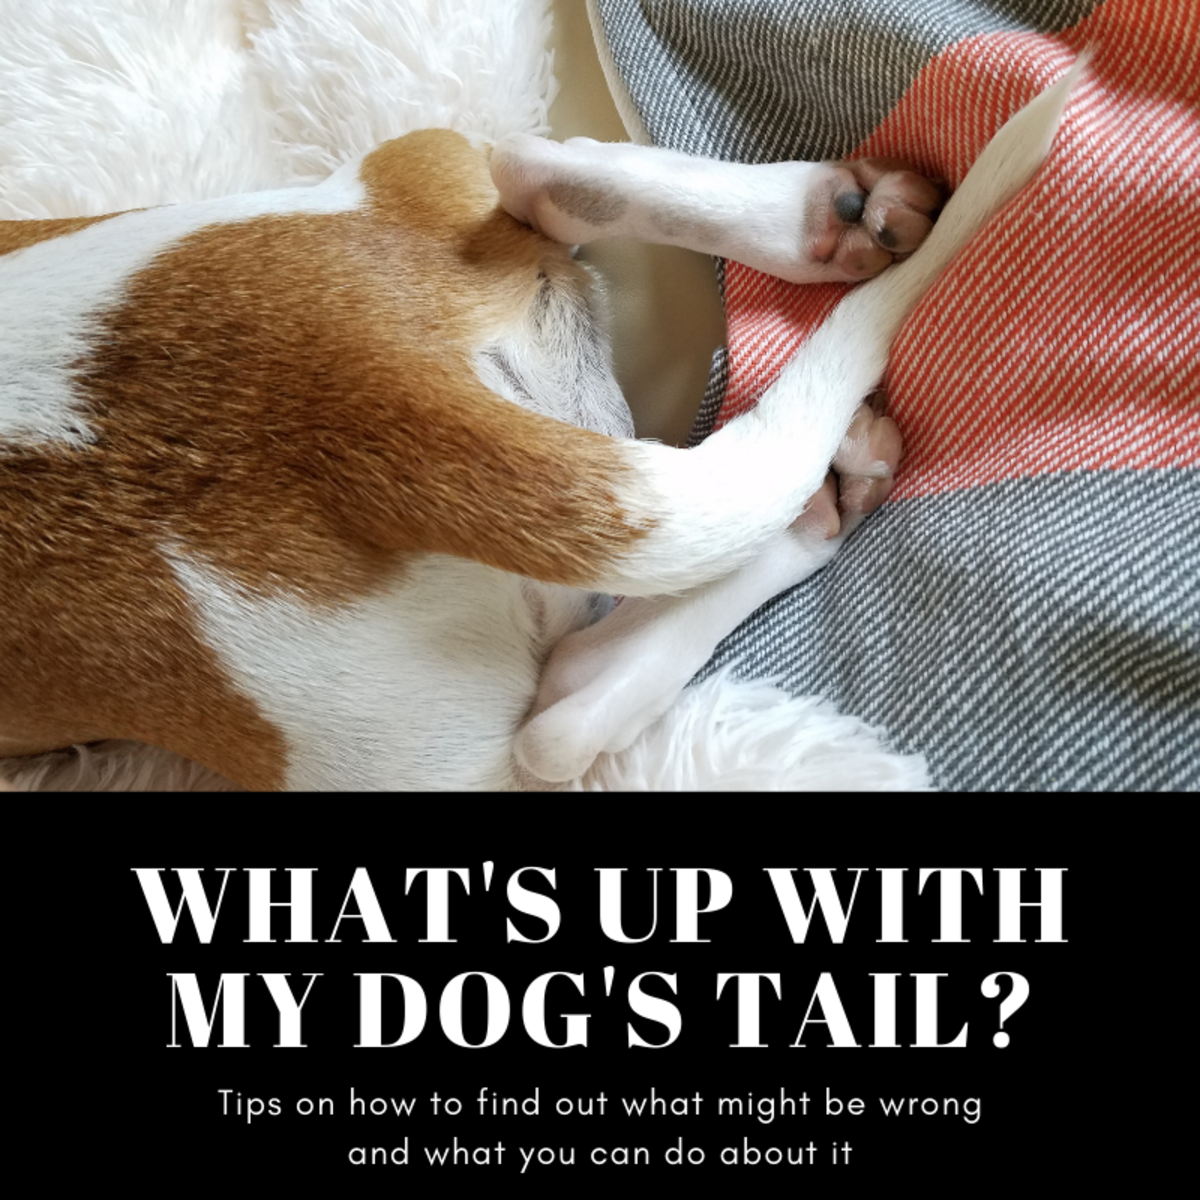 This article will help you find out what might be wrong with your beloved dog's tail and hopefully provide some guidance on what you might be able to do about it.